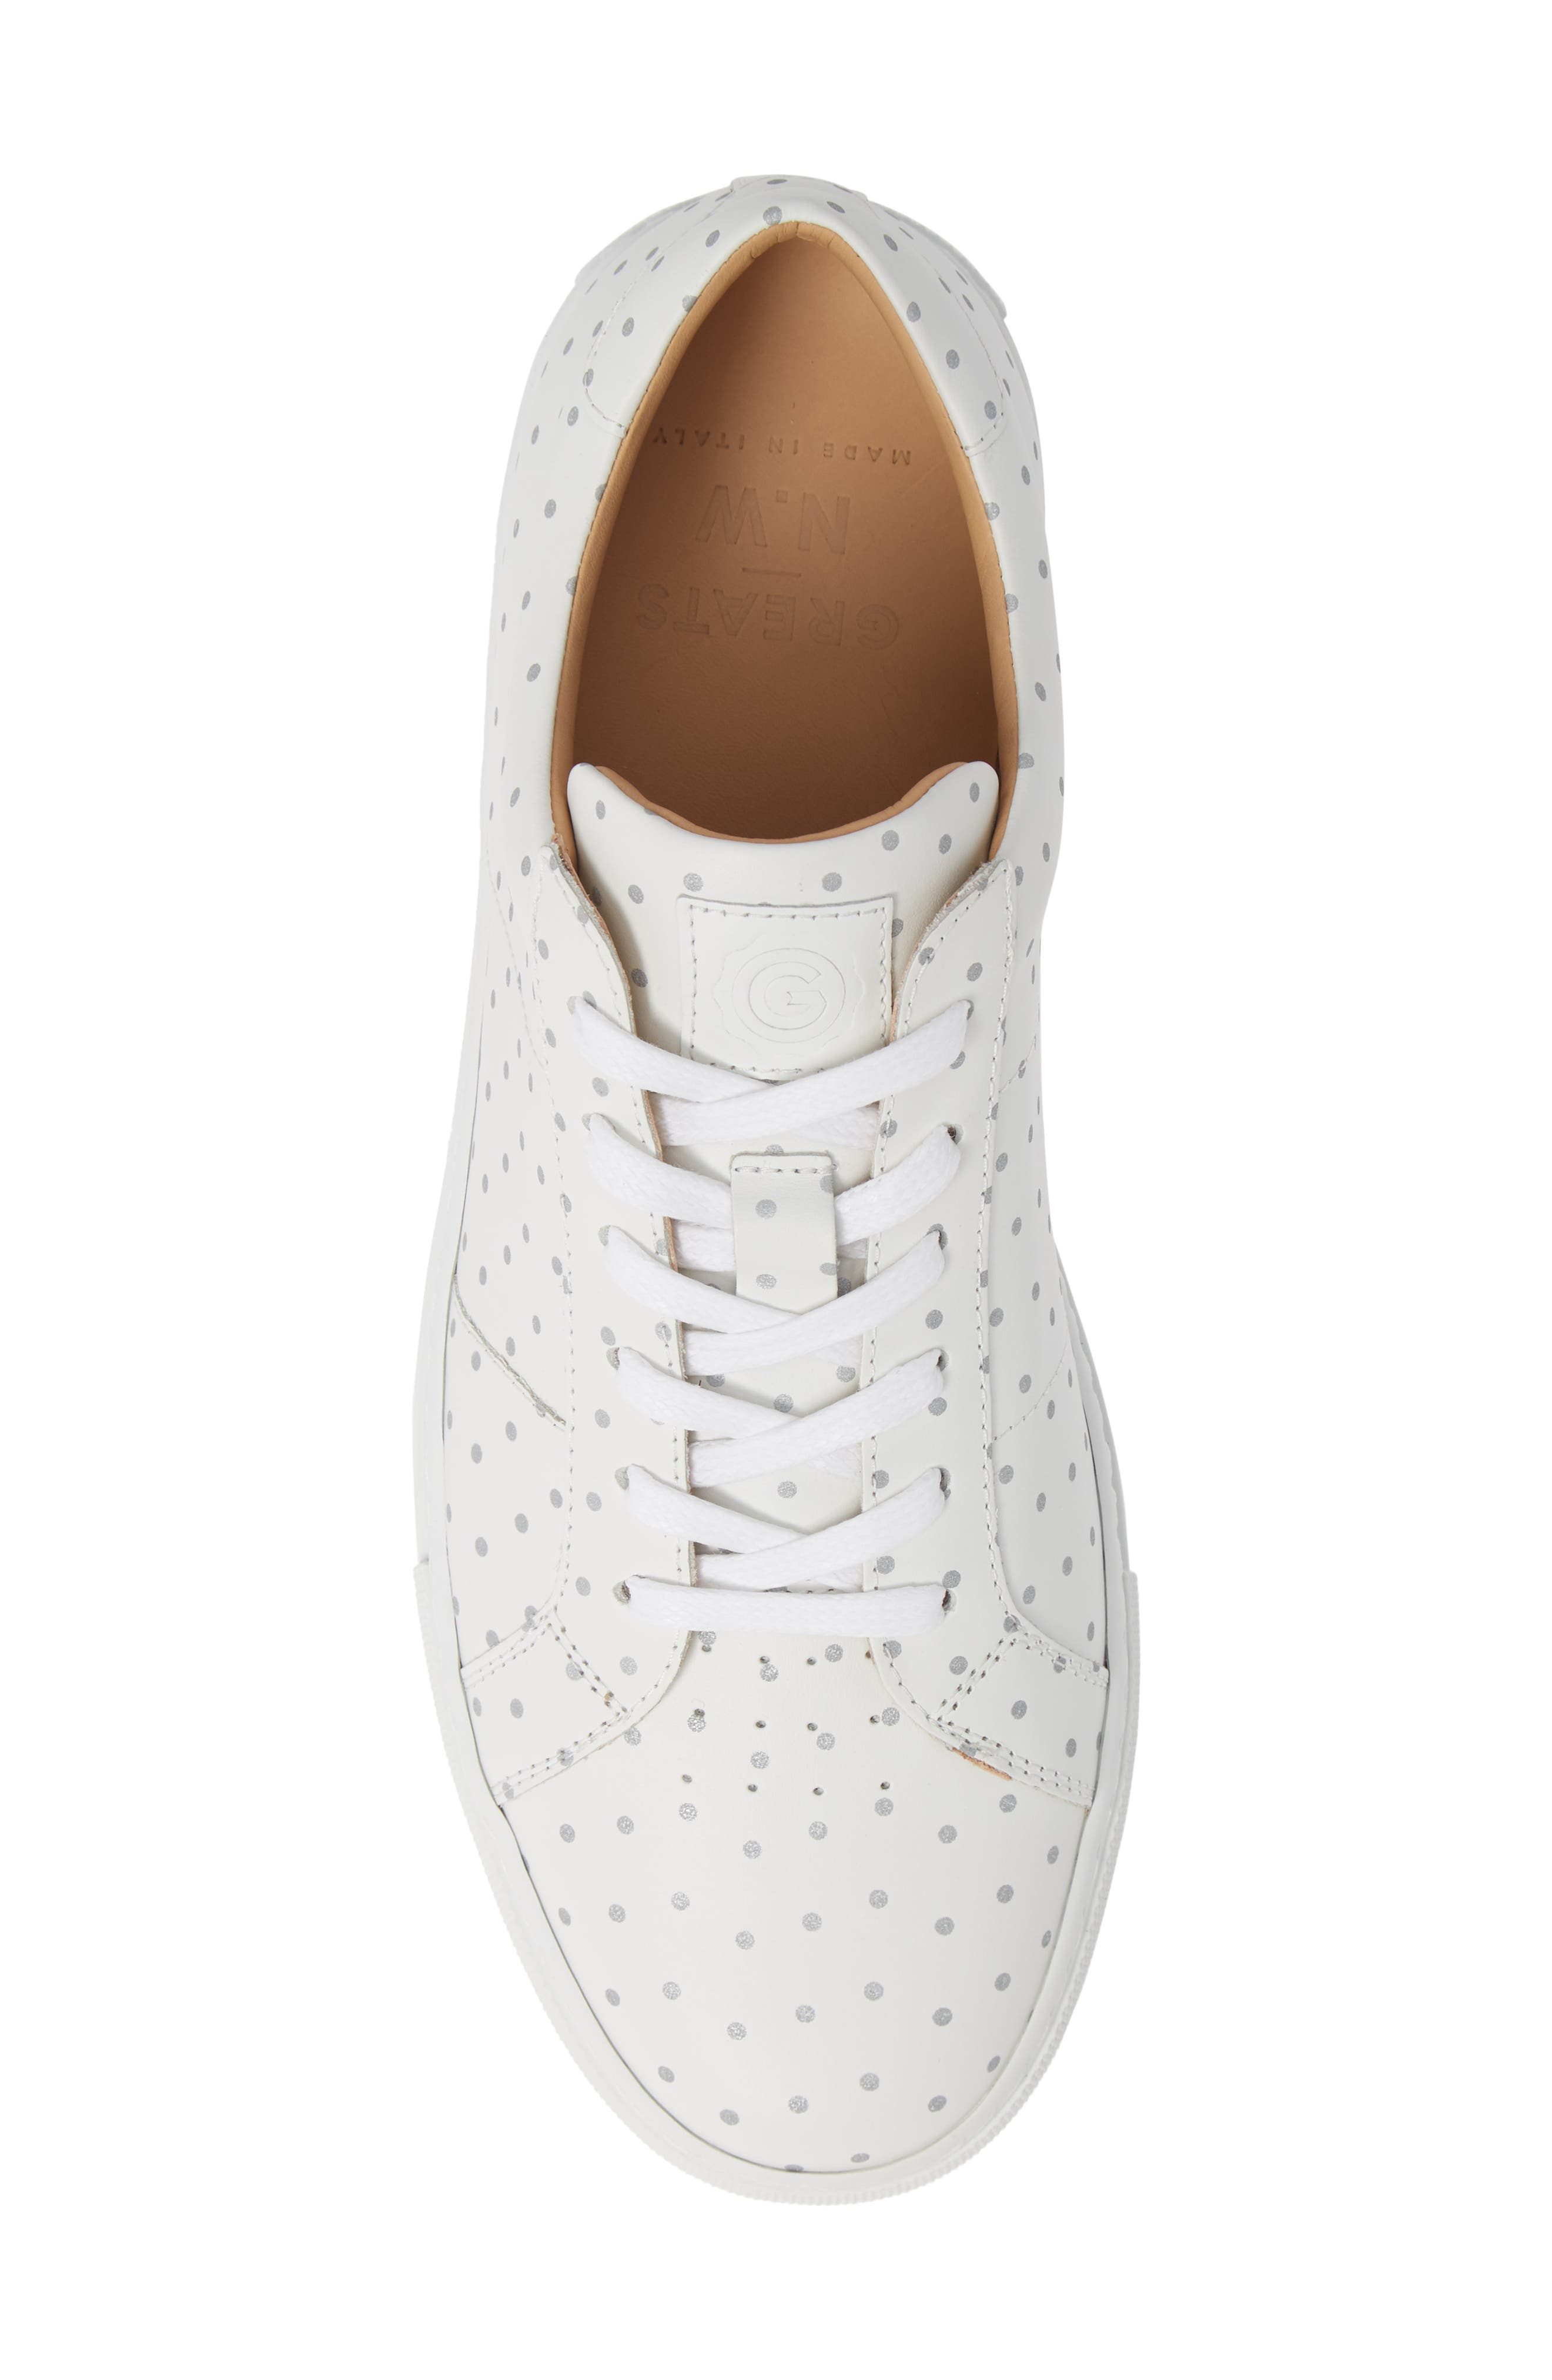 Nick Wooster x GREATS Royale Dots Low Top Sneaker,                             Alternate thumbnail 5, color,                             WHITE W/ 3M DOTS